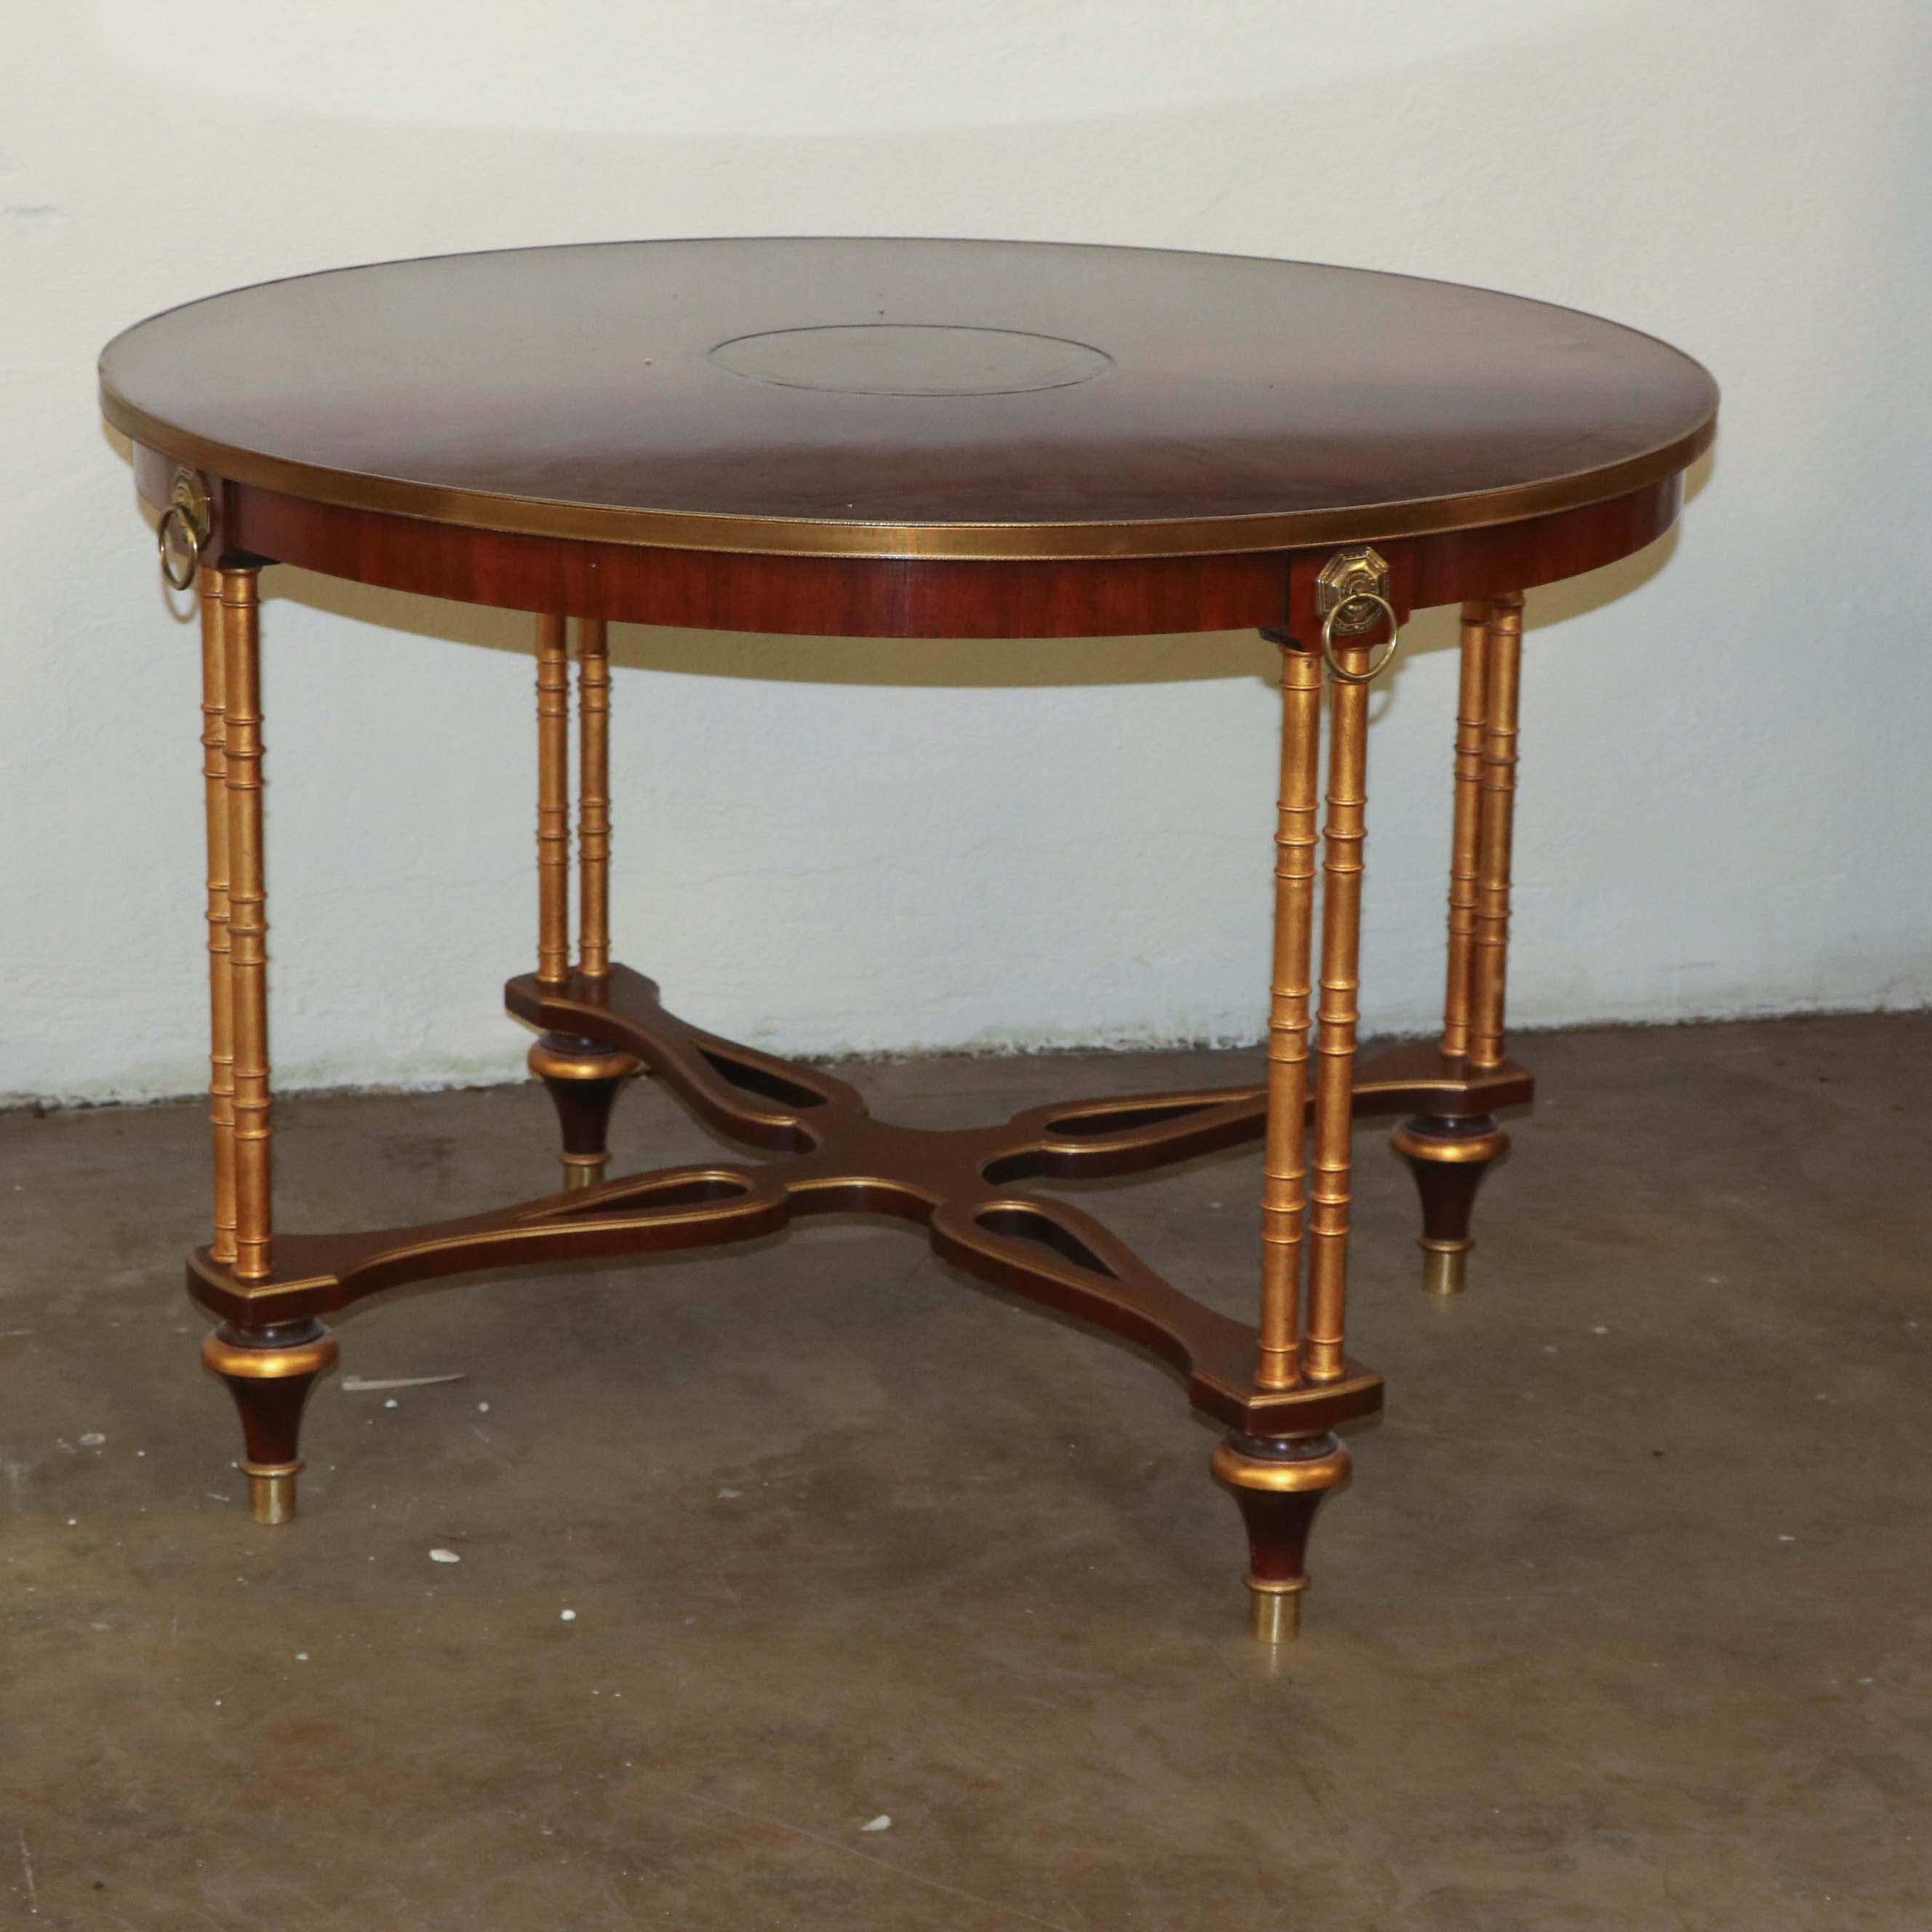 Neoclassical Style Giltwood and Mahogany Dining Table, 20th Century